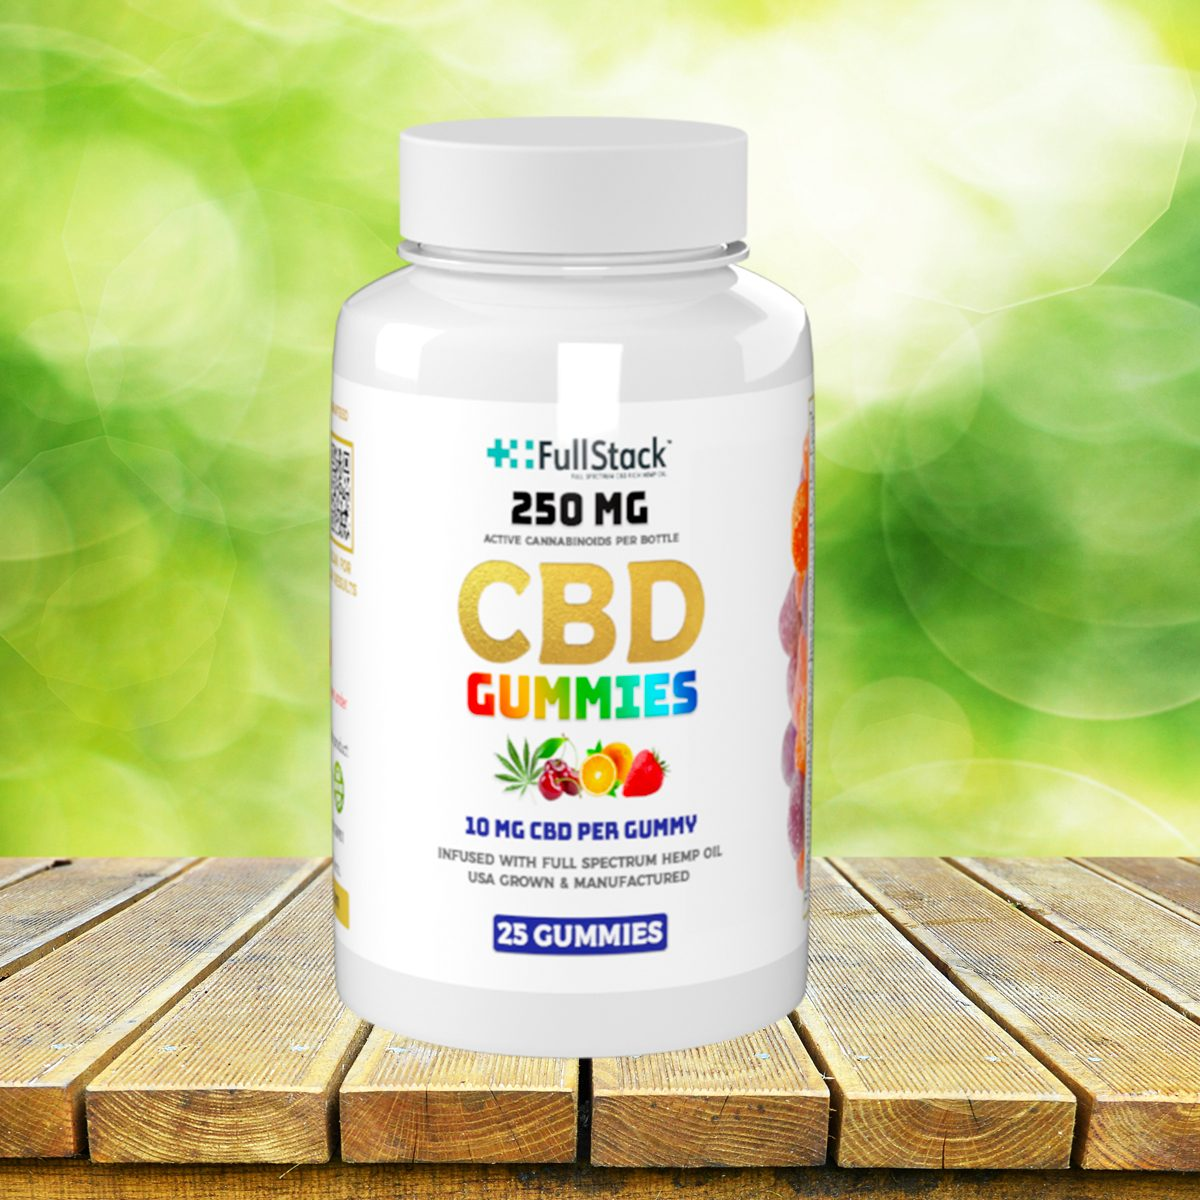 fullstack cbd gummies 25ct